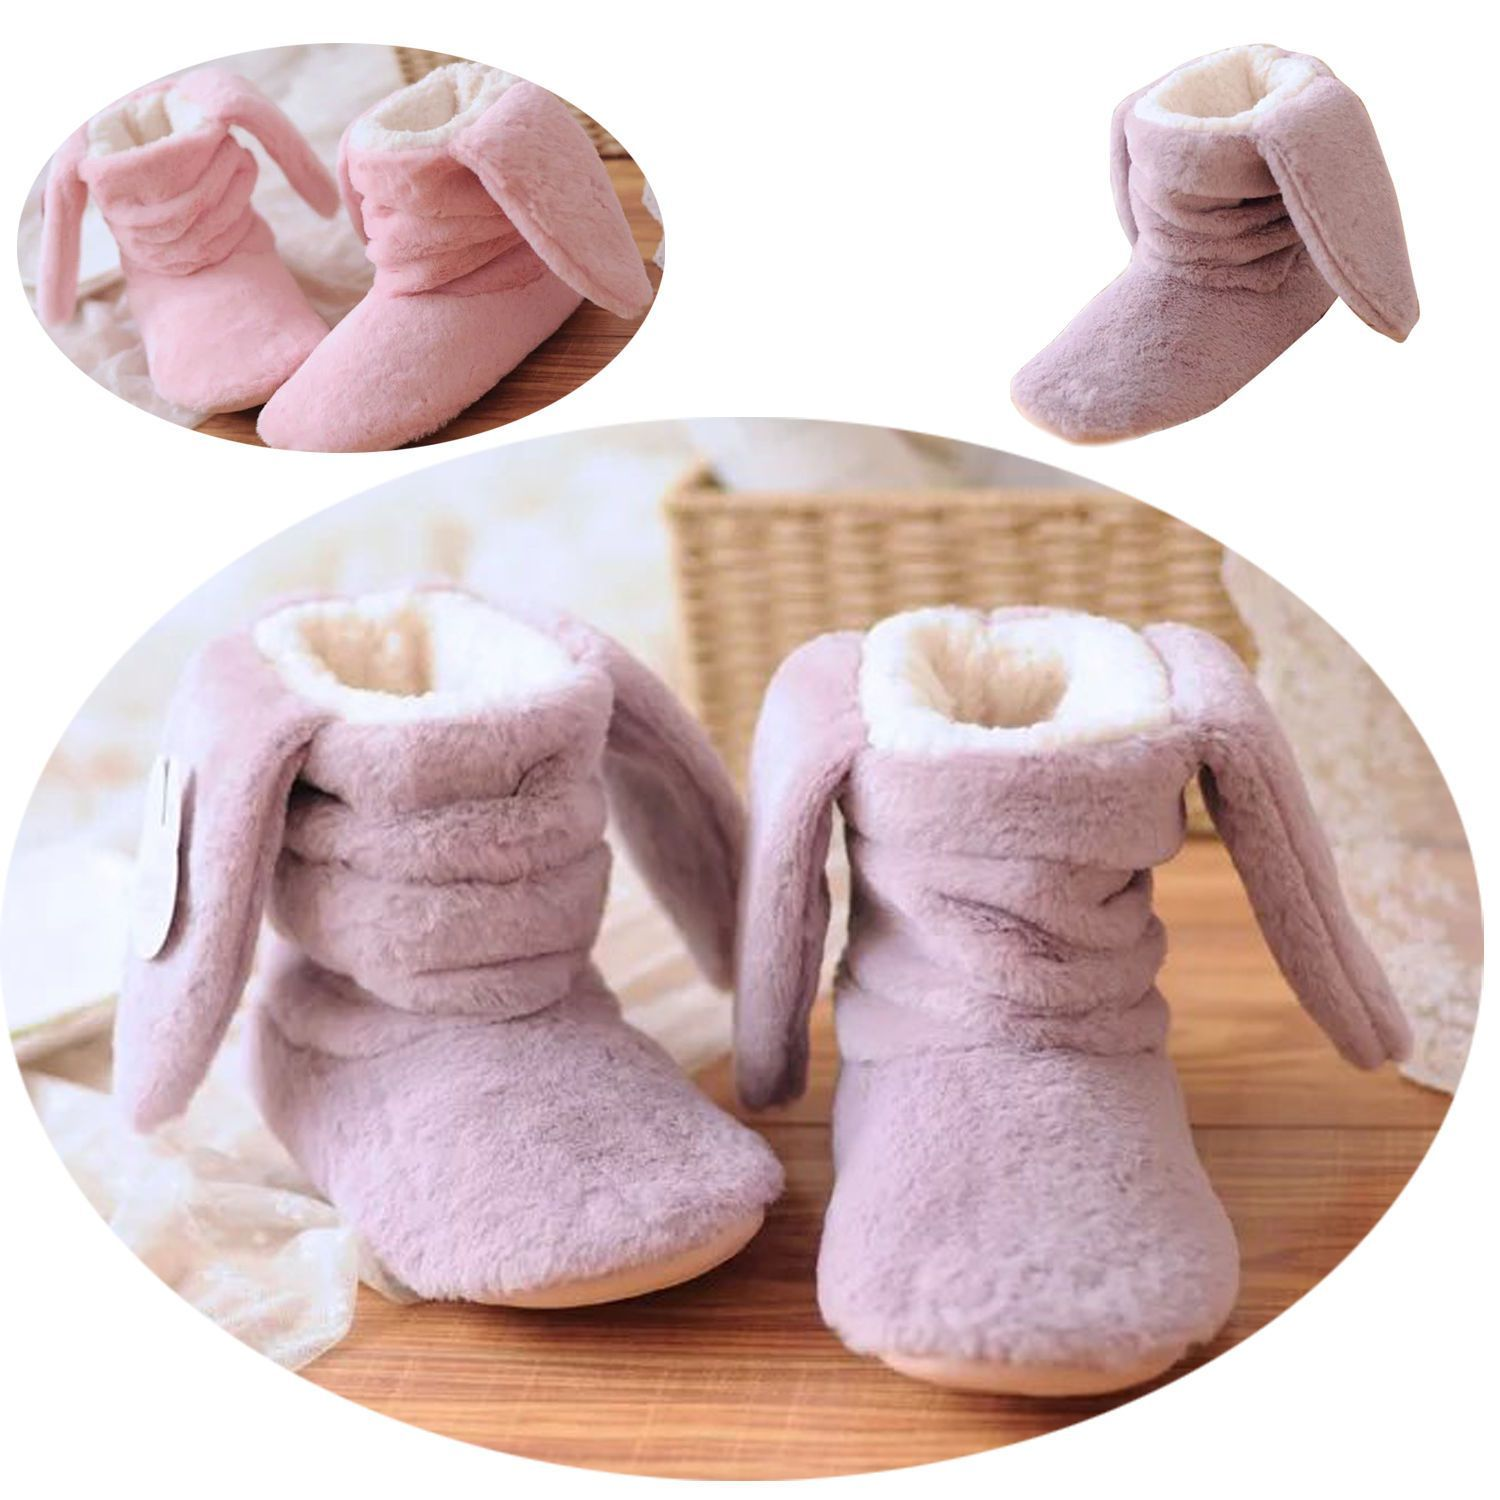 b8a95c65d5179 Cute Bunny Girls Women Winter Warm Home Shoes Rabbit Velvet Indoor Boots  Slipper